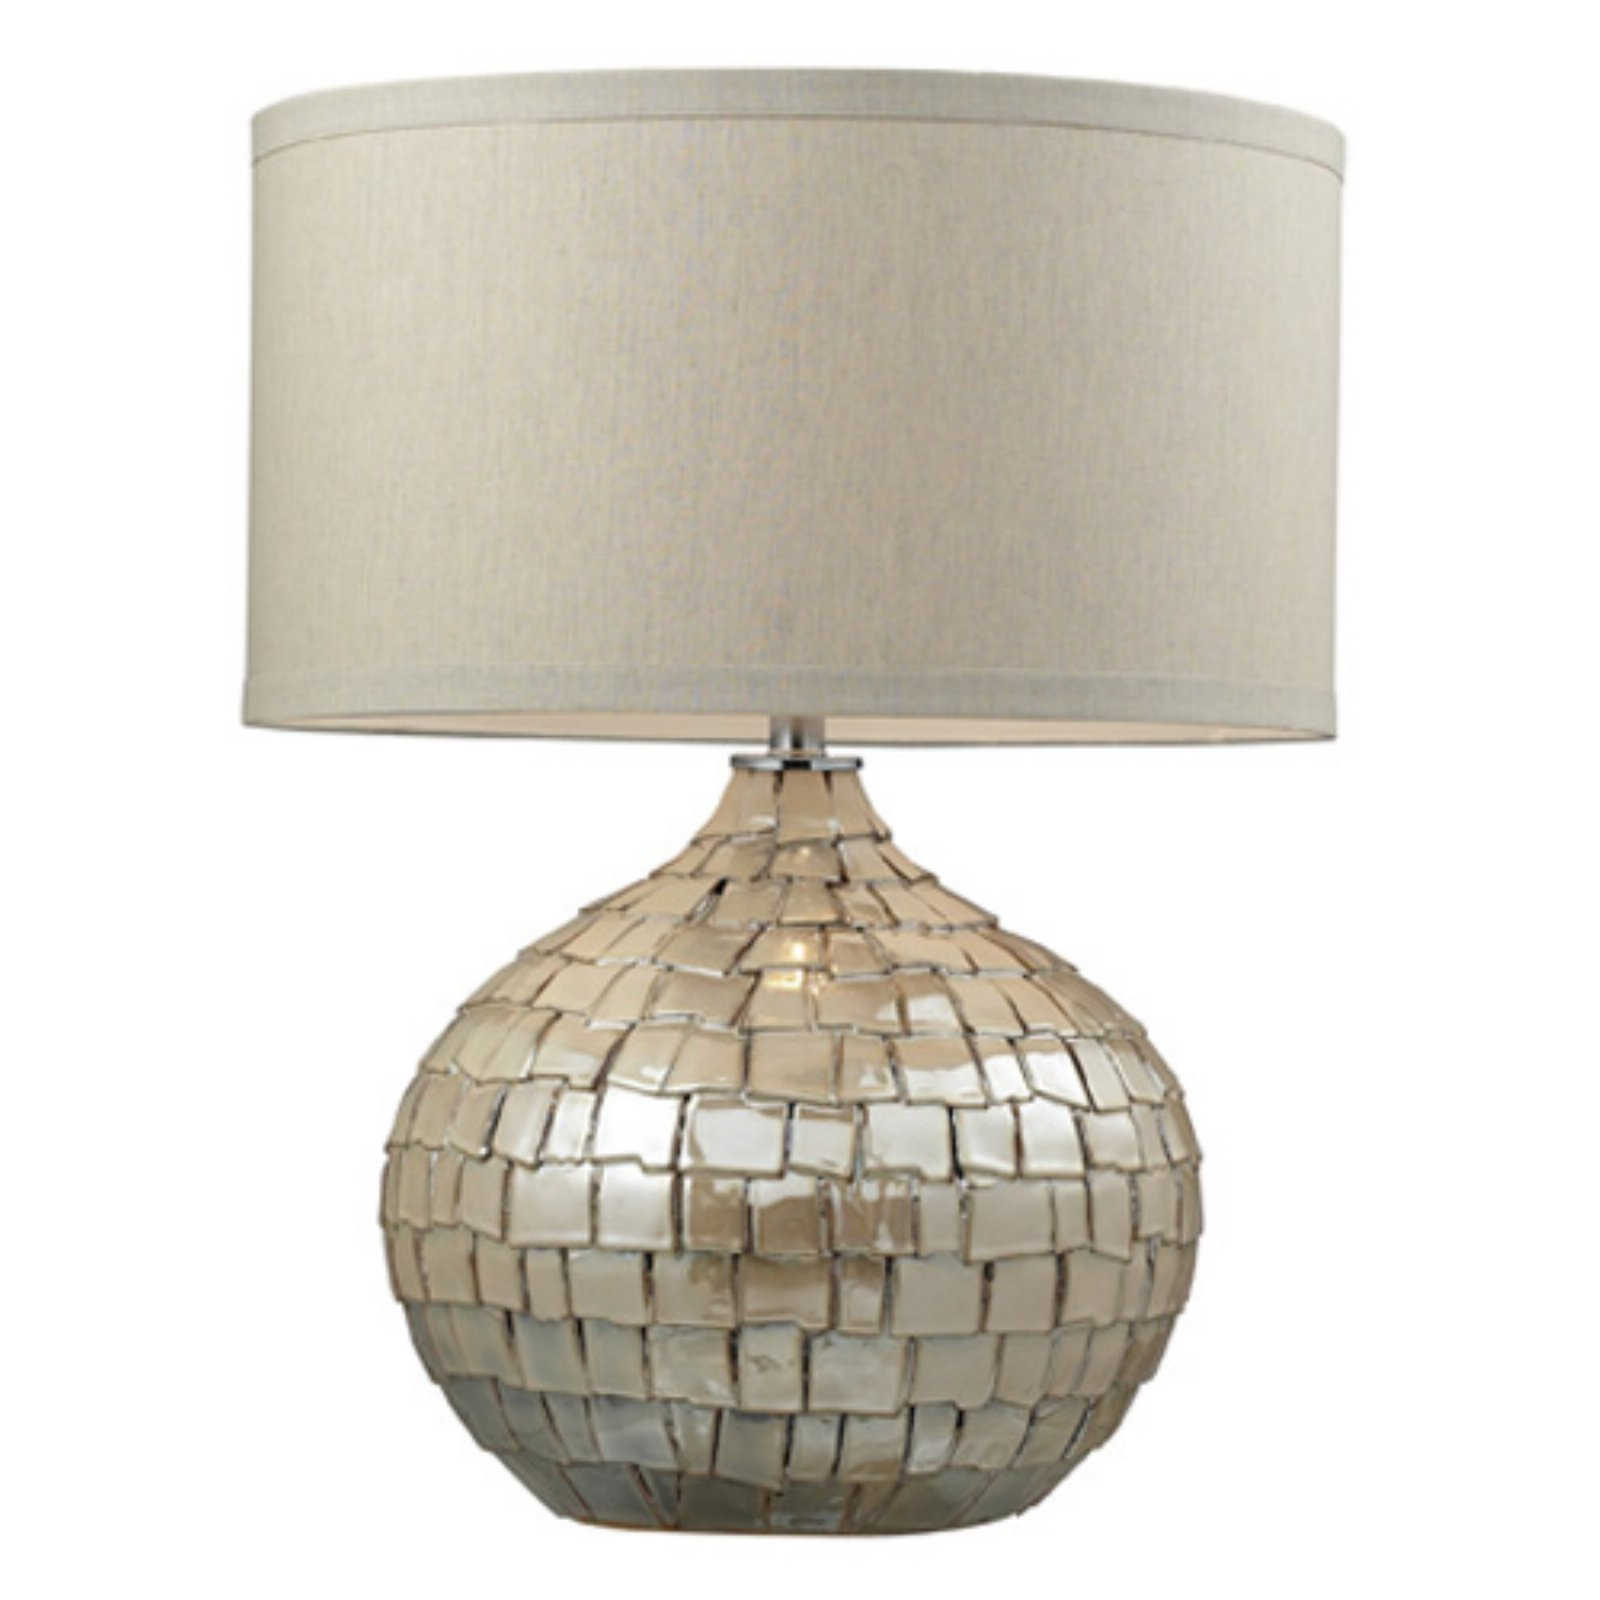 Dimond Lighting Canaan Ceramic Table Lamp D2264